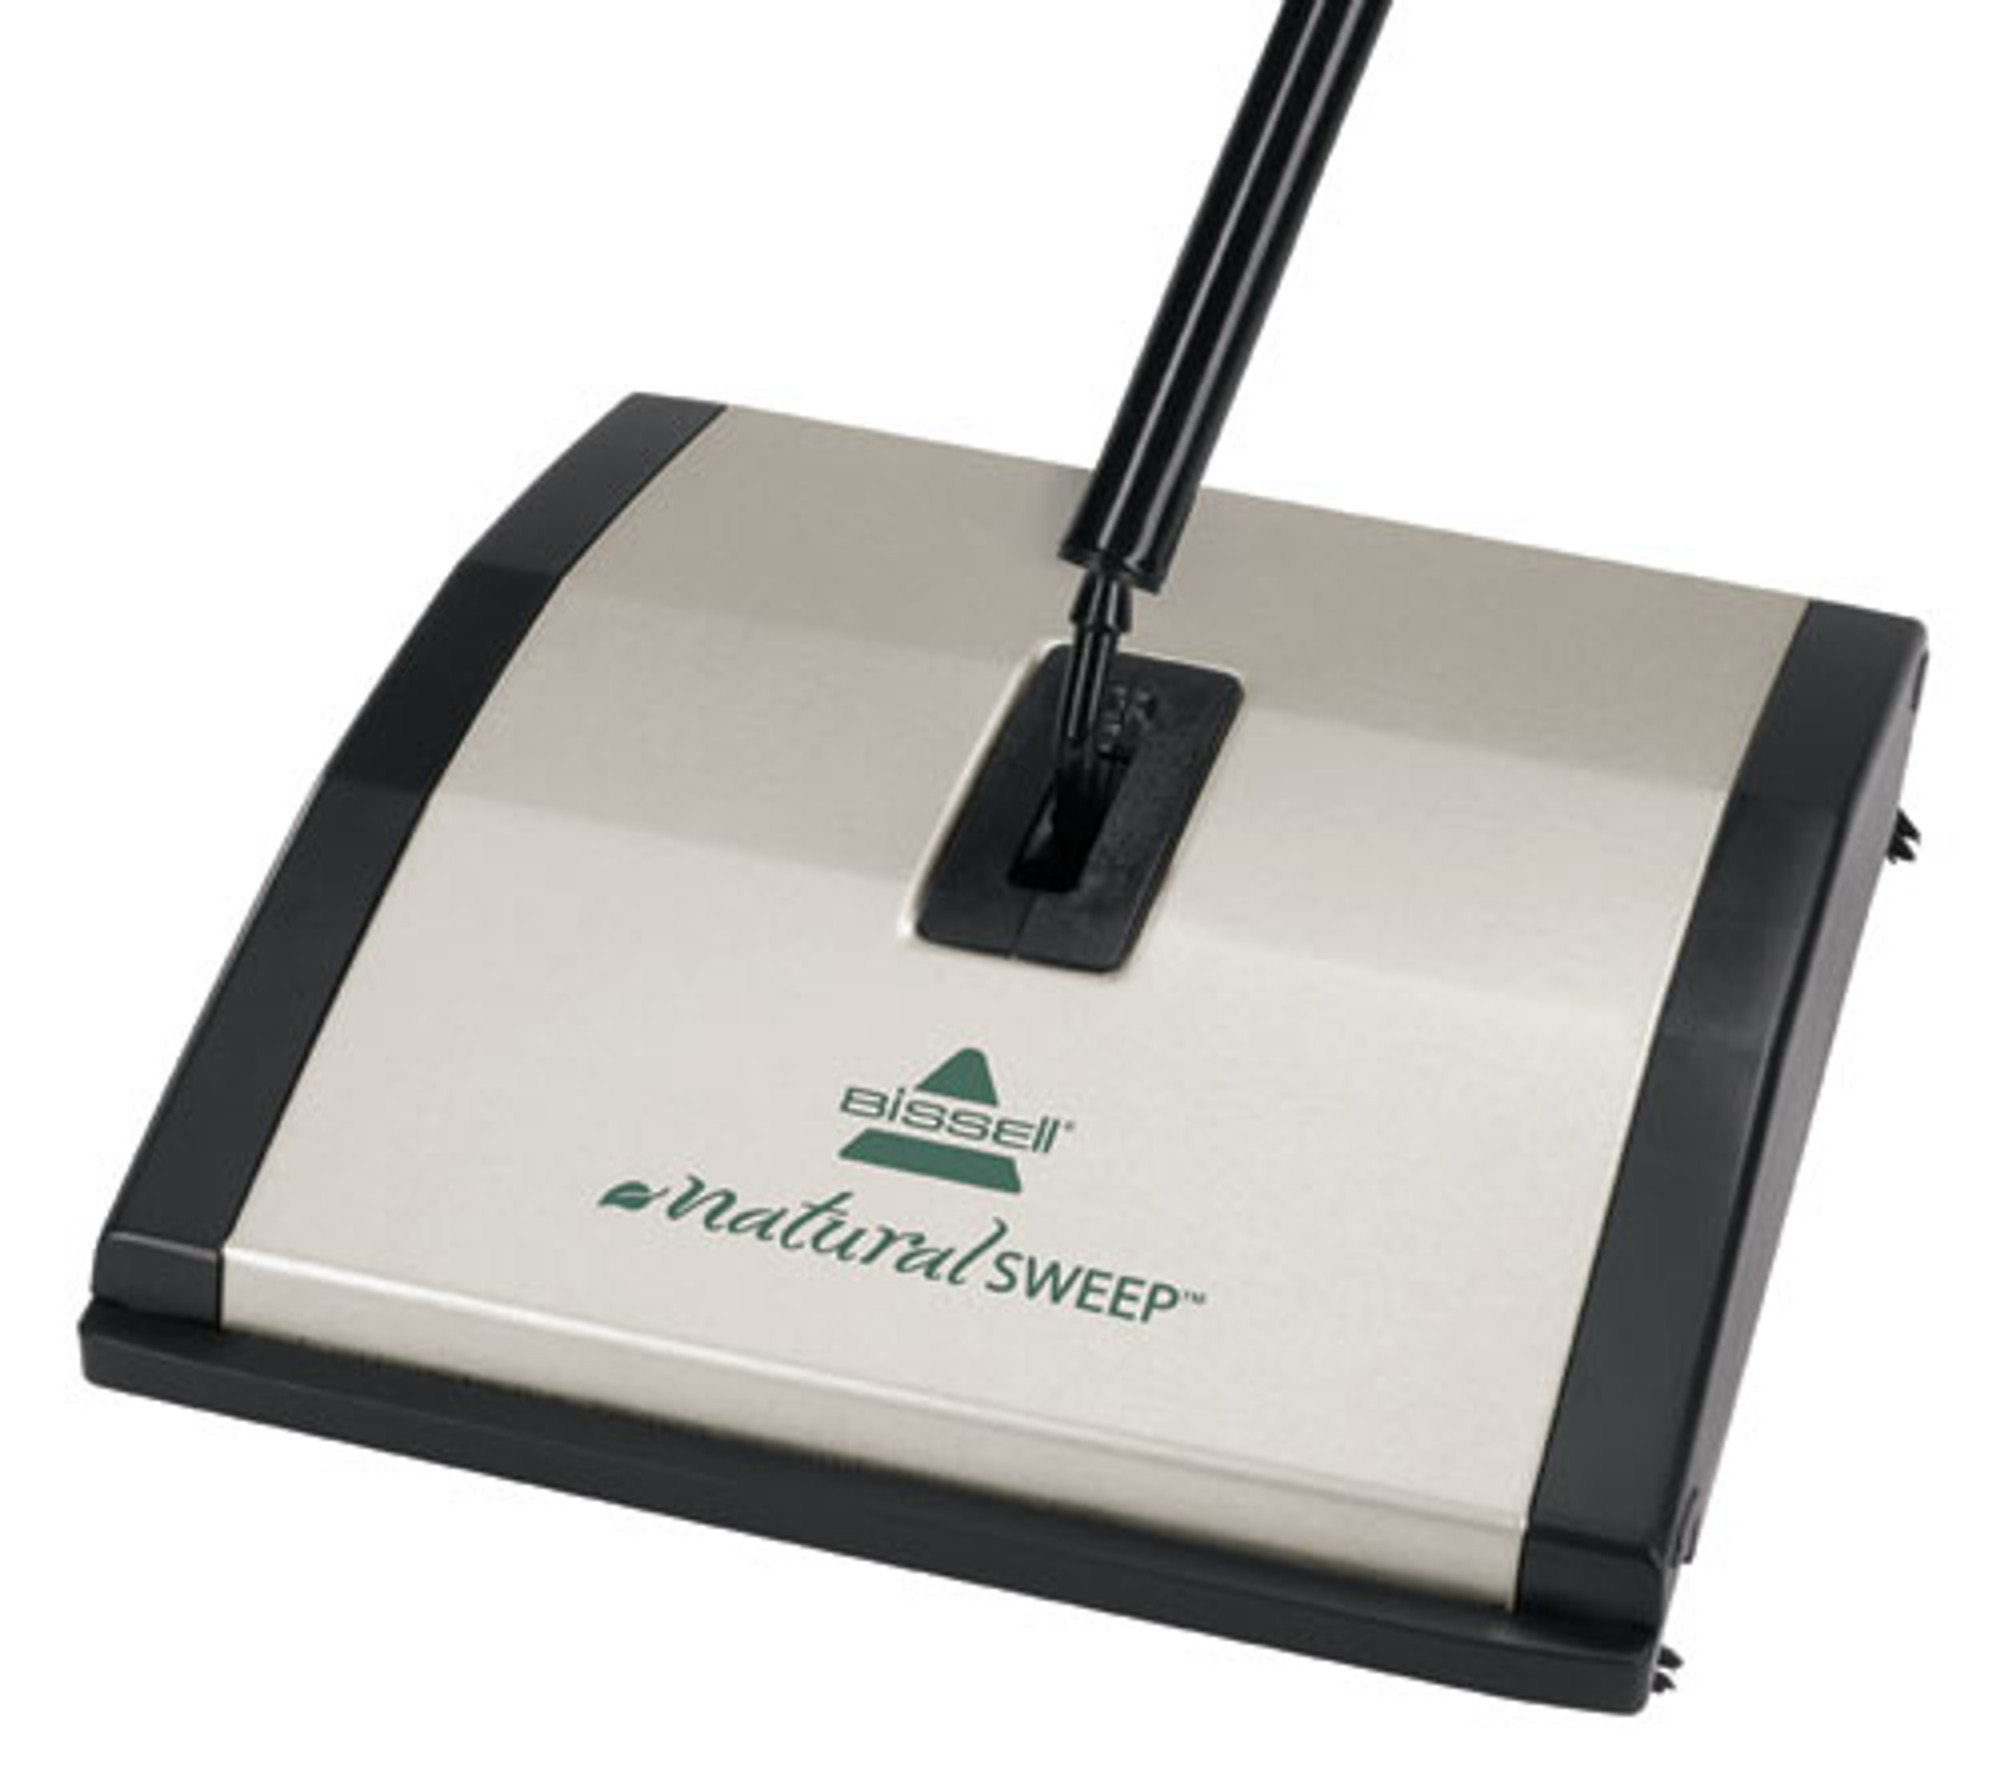 Buy Bissell 92N0C Carpet Sweeper From Canada At McHardyVac.com